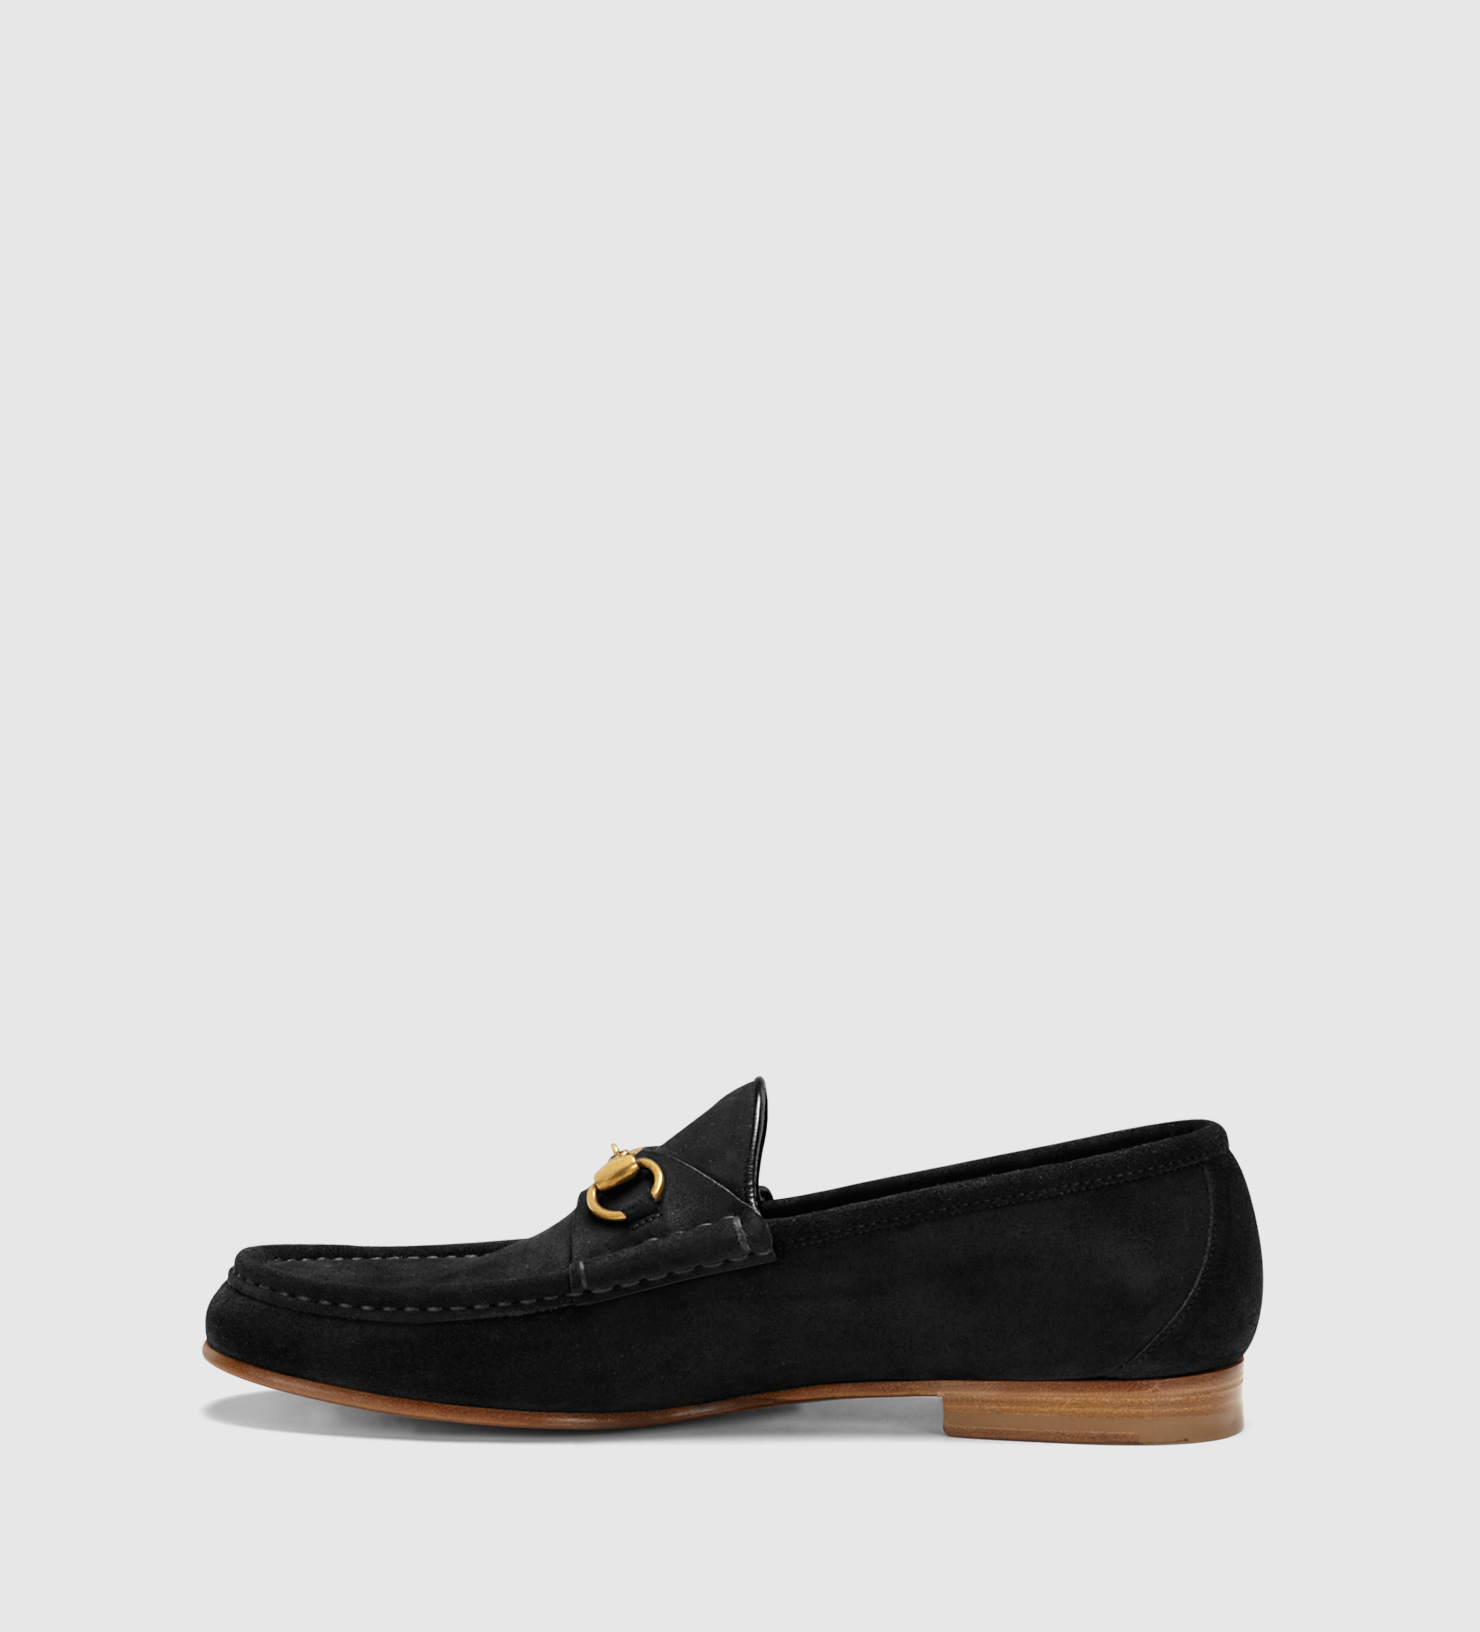 Creep Shoes For Men